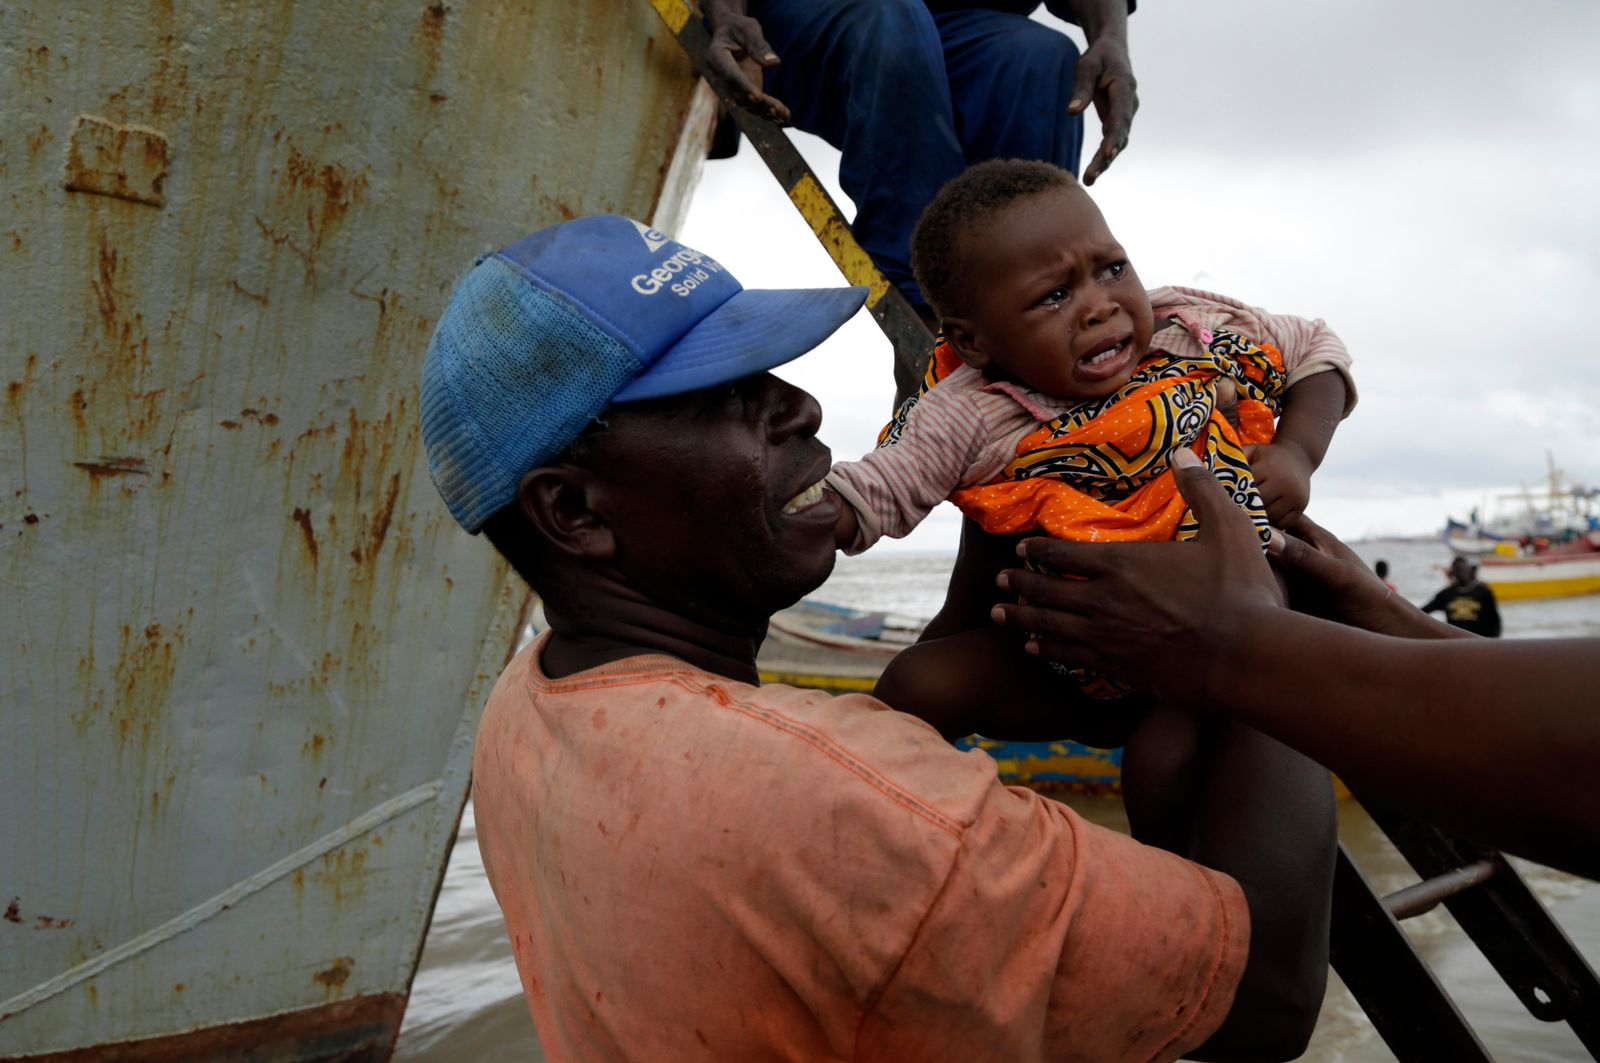 A young girl is carried off the boat after being rescued from a flooded area of Buzi district, 200km outside Beira, Mozambique, Saturday, March 23, 2019. (AP Photo/Themba Hadebe)